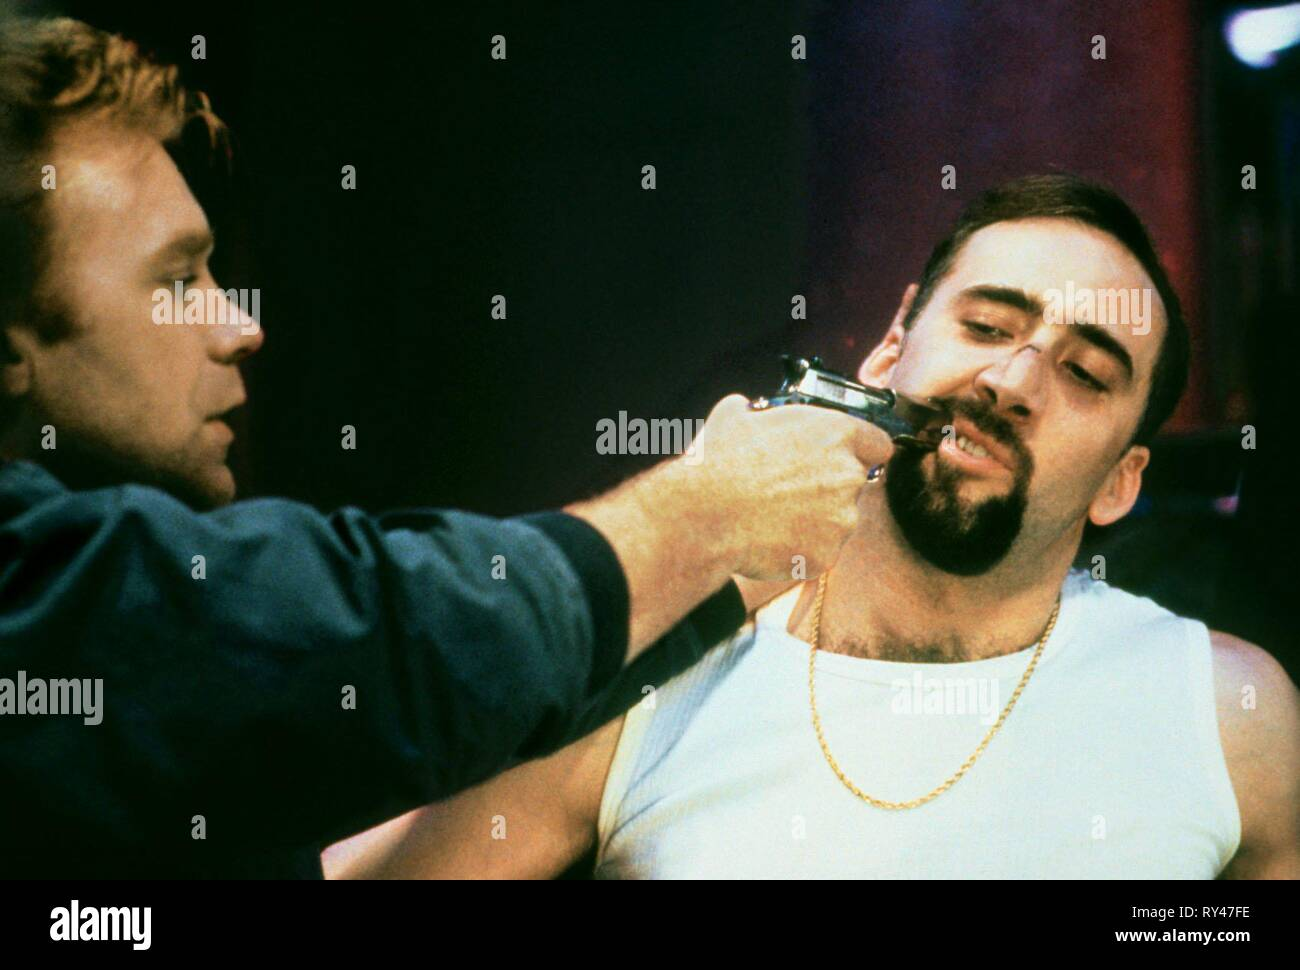 CARUSO,CAGE, KISS OF DEATH, 1995 - Stock Image